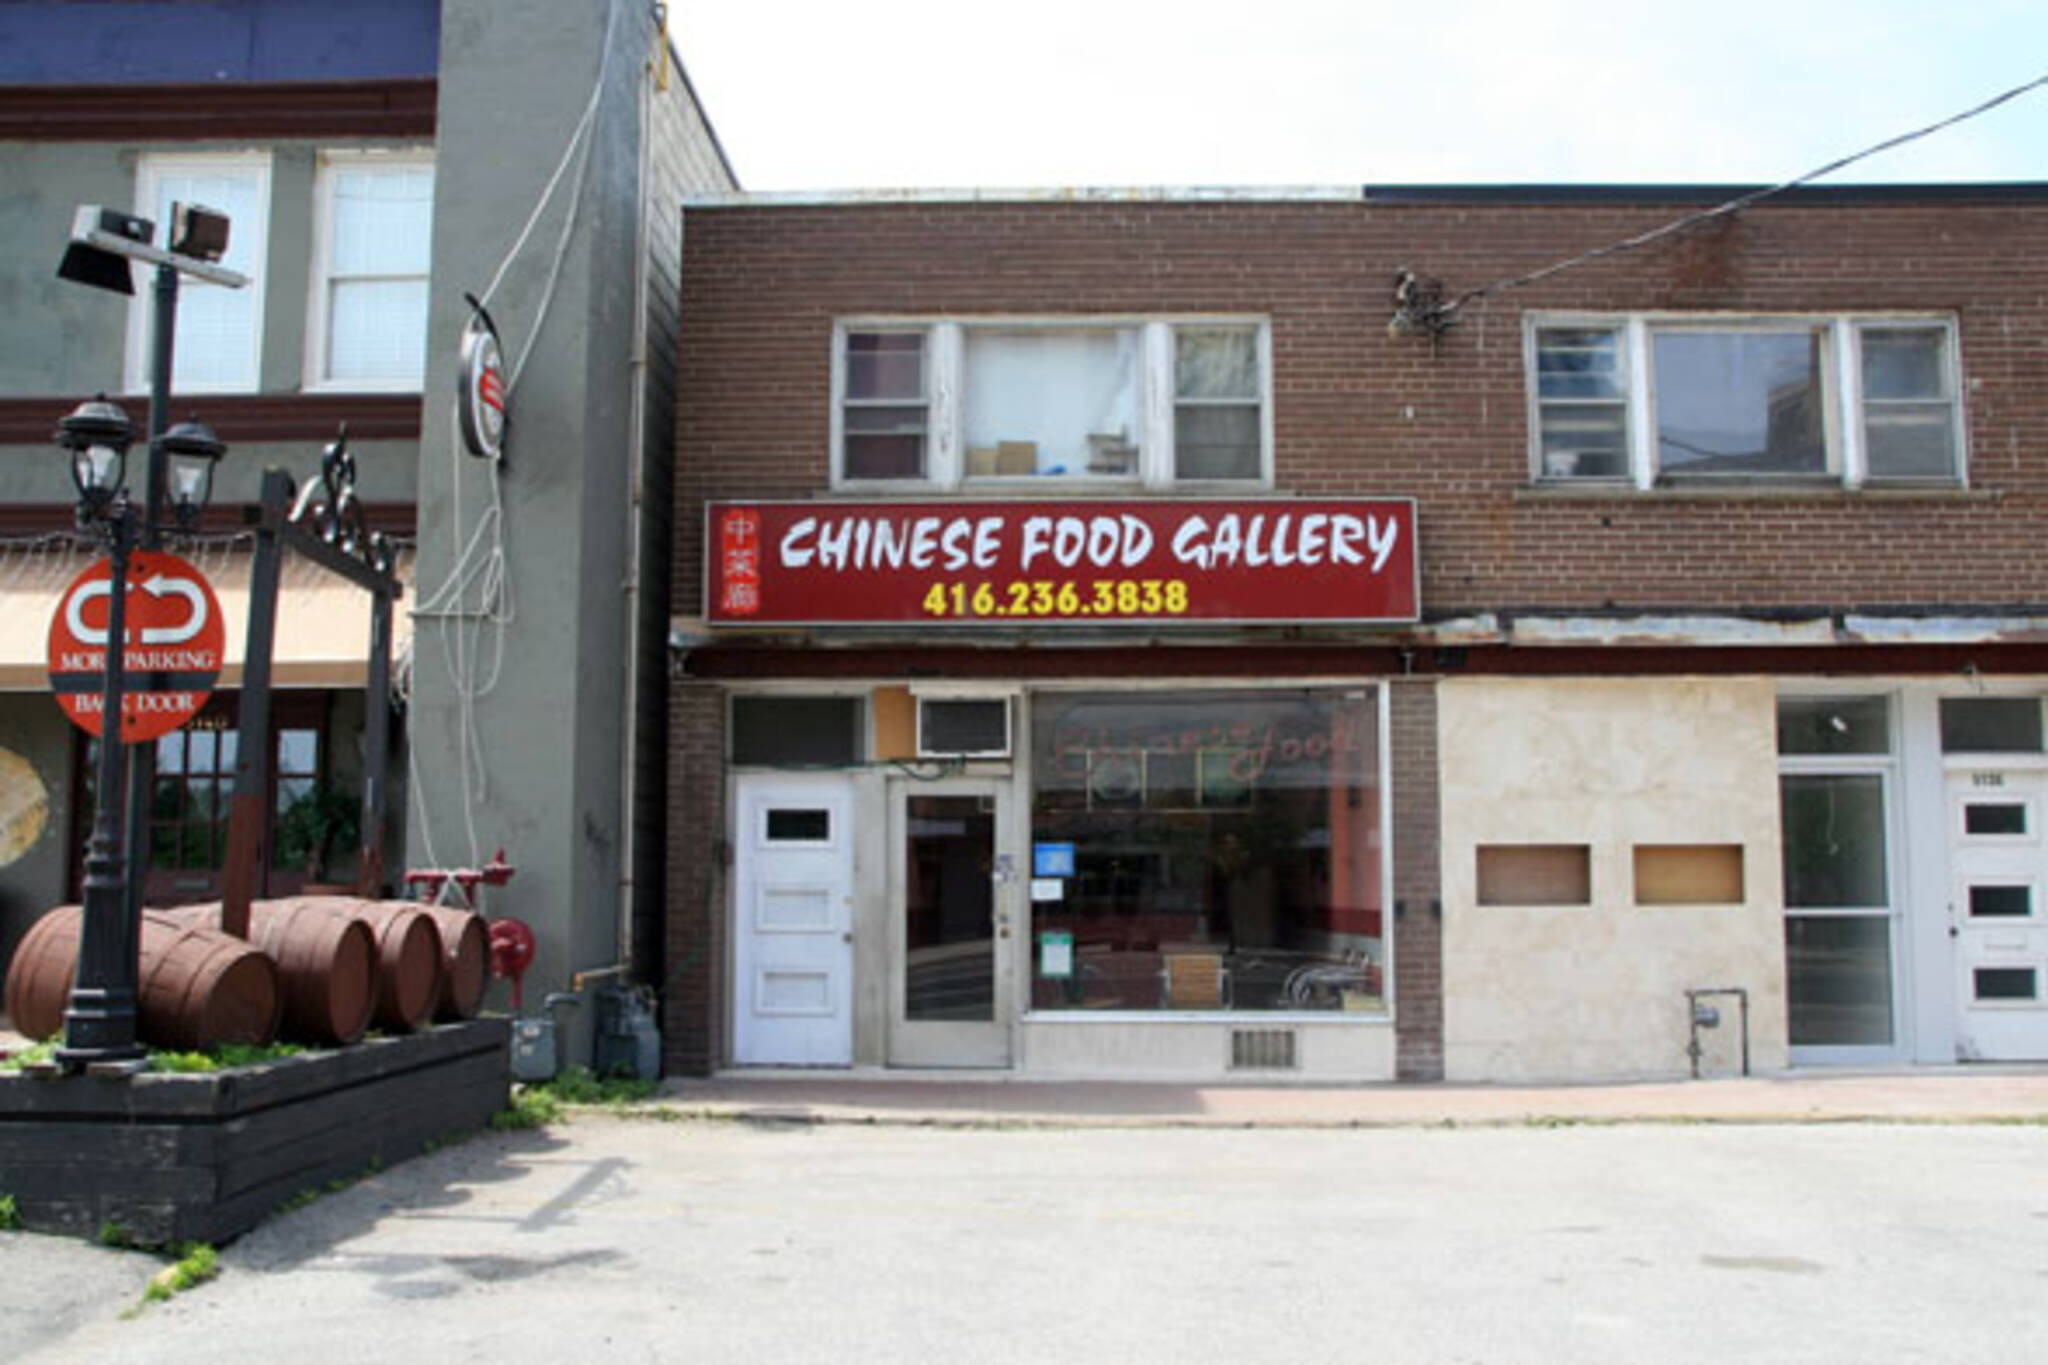 Chinese Food Gallery